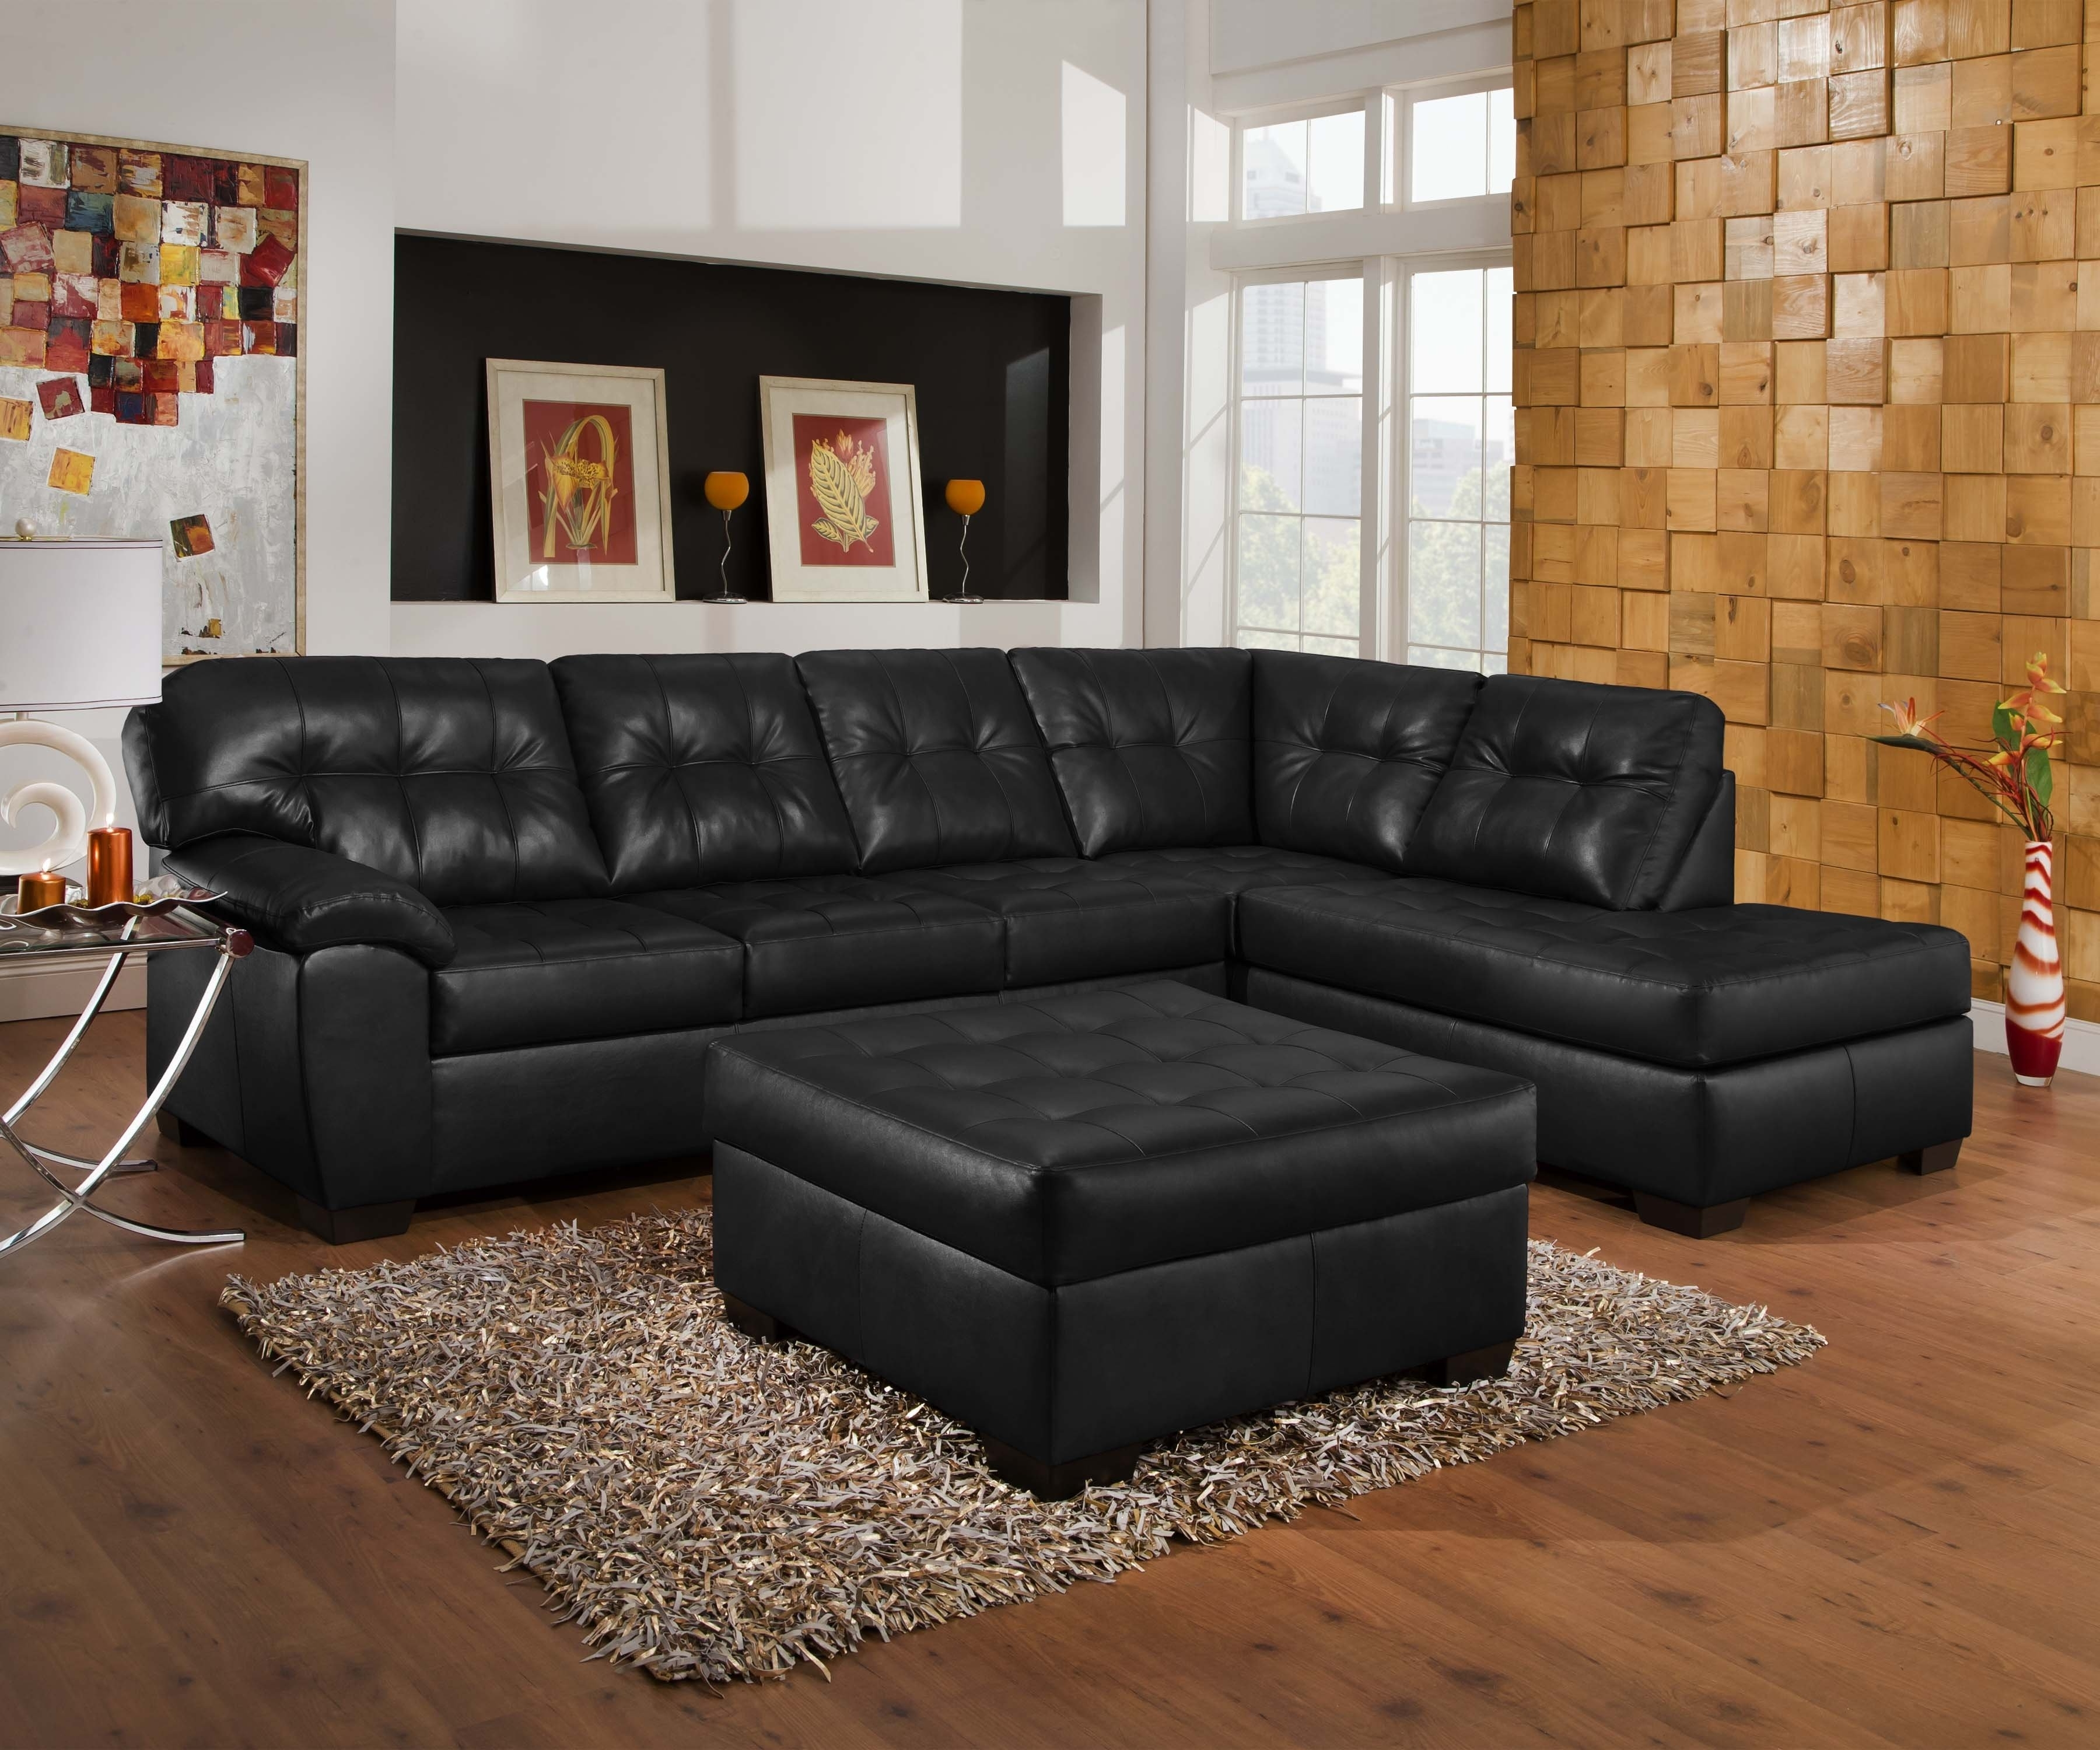 Black Leather Contemporary Sectional Black And White Leather Sofa Intended For Newest Cheap Black Sofas (View 9 of 20)